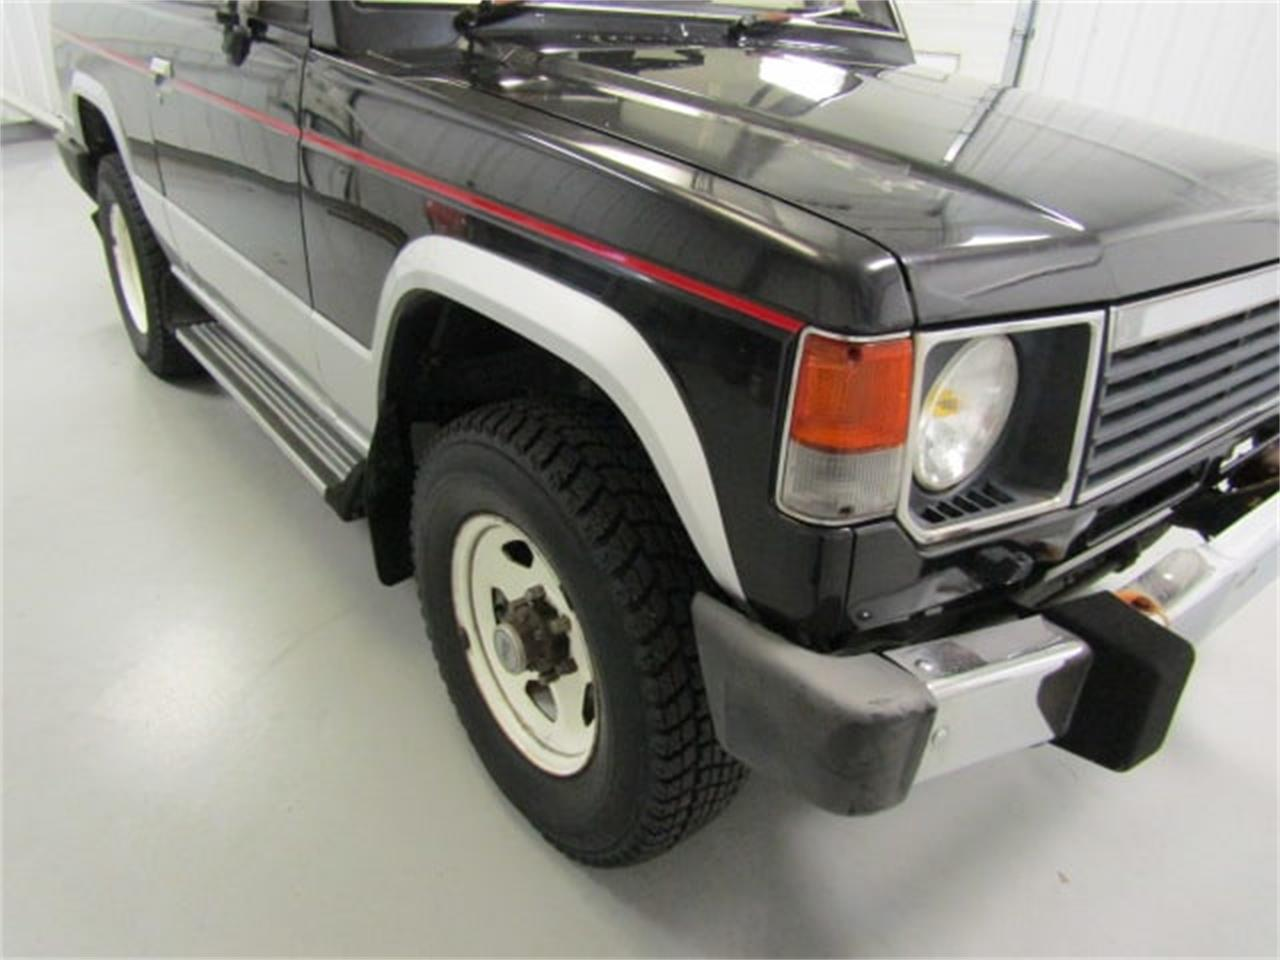 Large Picture of 1988 Mitsubishi Pajero located in Virginia - $5,900.00 - JZKY